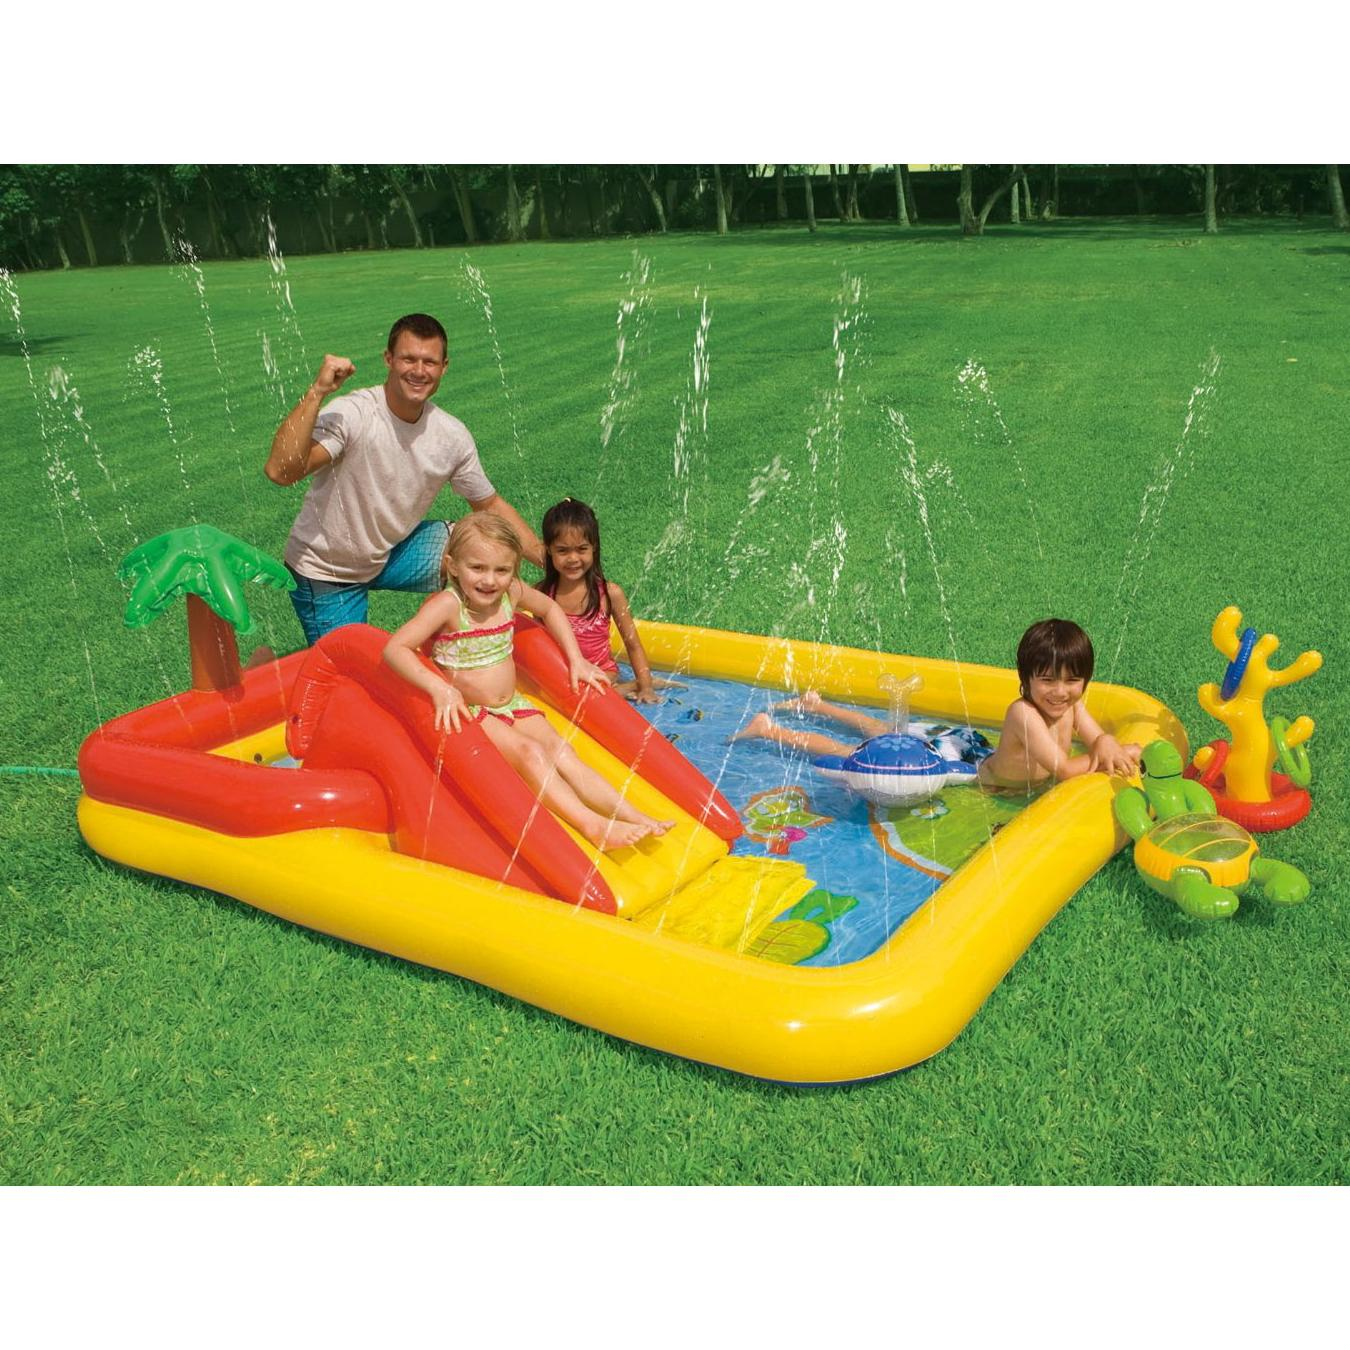 Inflatable Slide Paddling Pool: Intex Ocean Play Kids Activity Water Play Centre Paddling